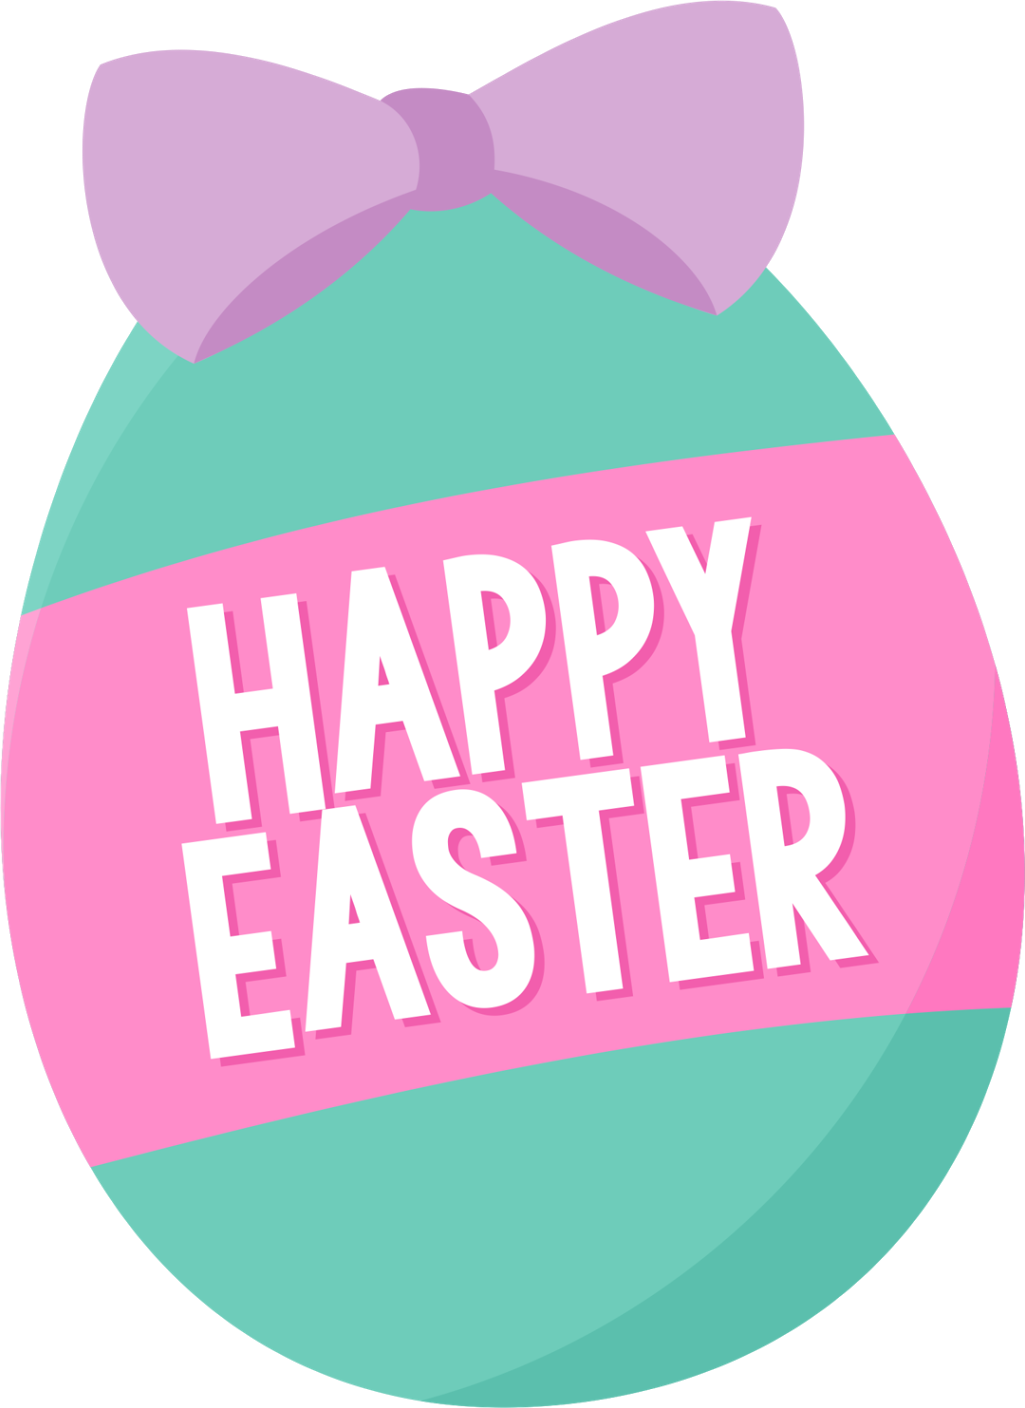 Pin by Organized Chaos on ⭐️ Easter bunny 1 Image, Png